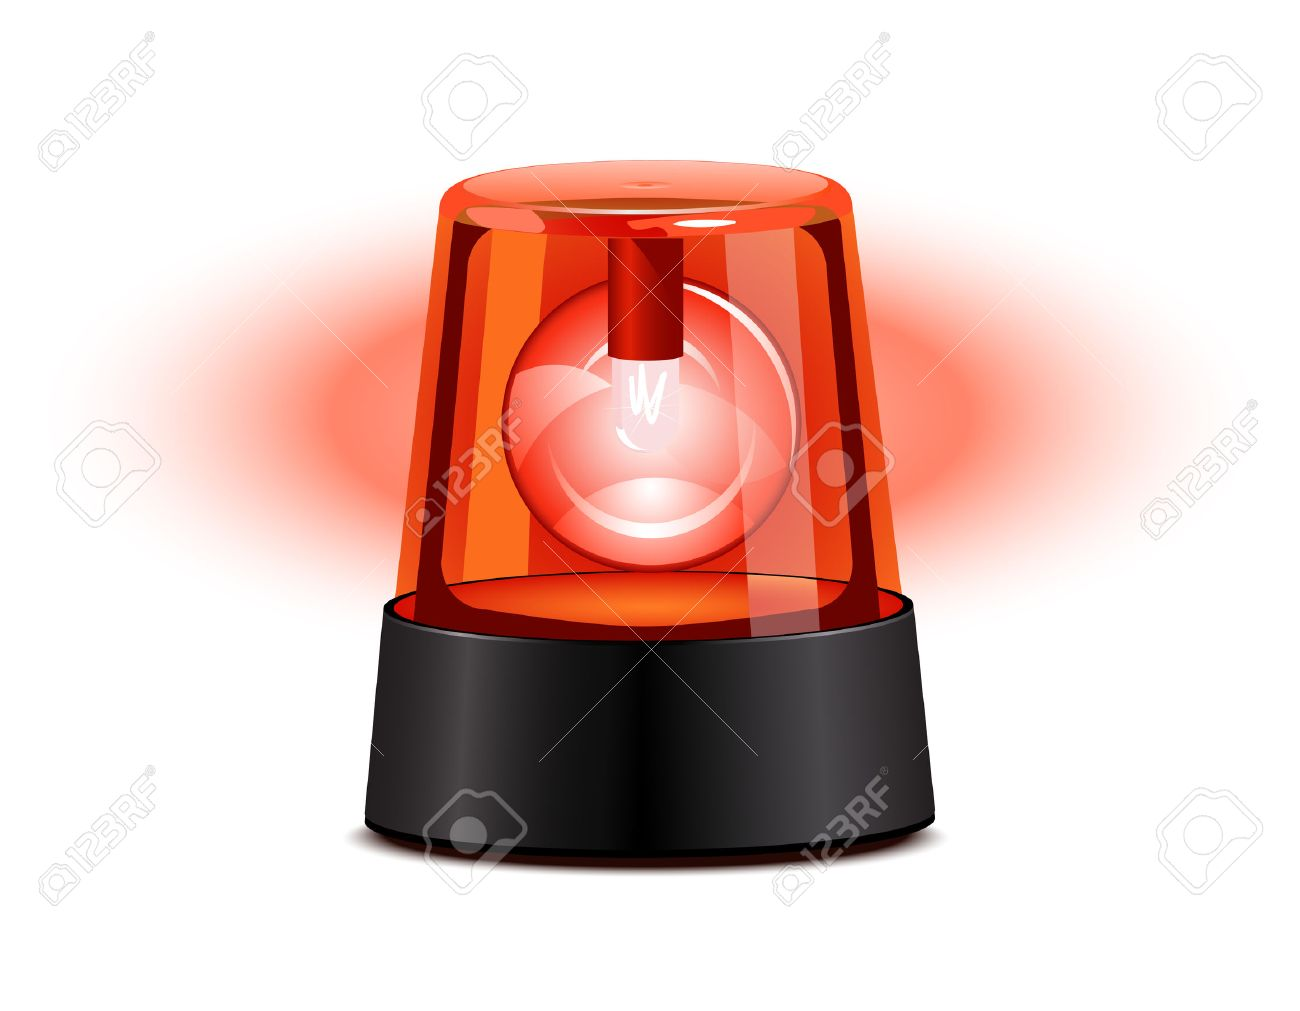 Flashing Red Light >> Red Flashing Light Over A White Background